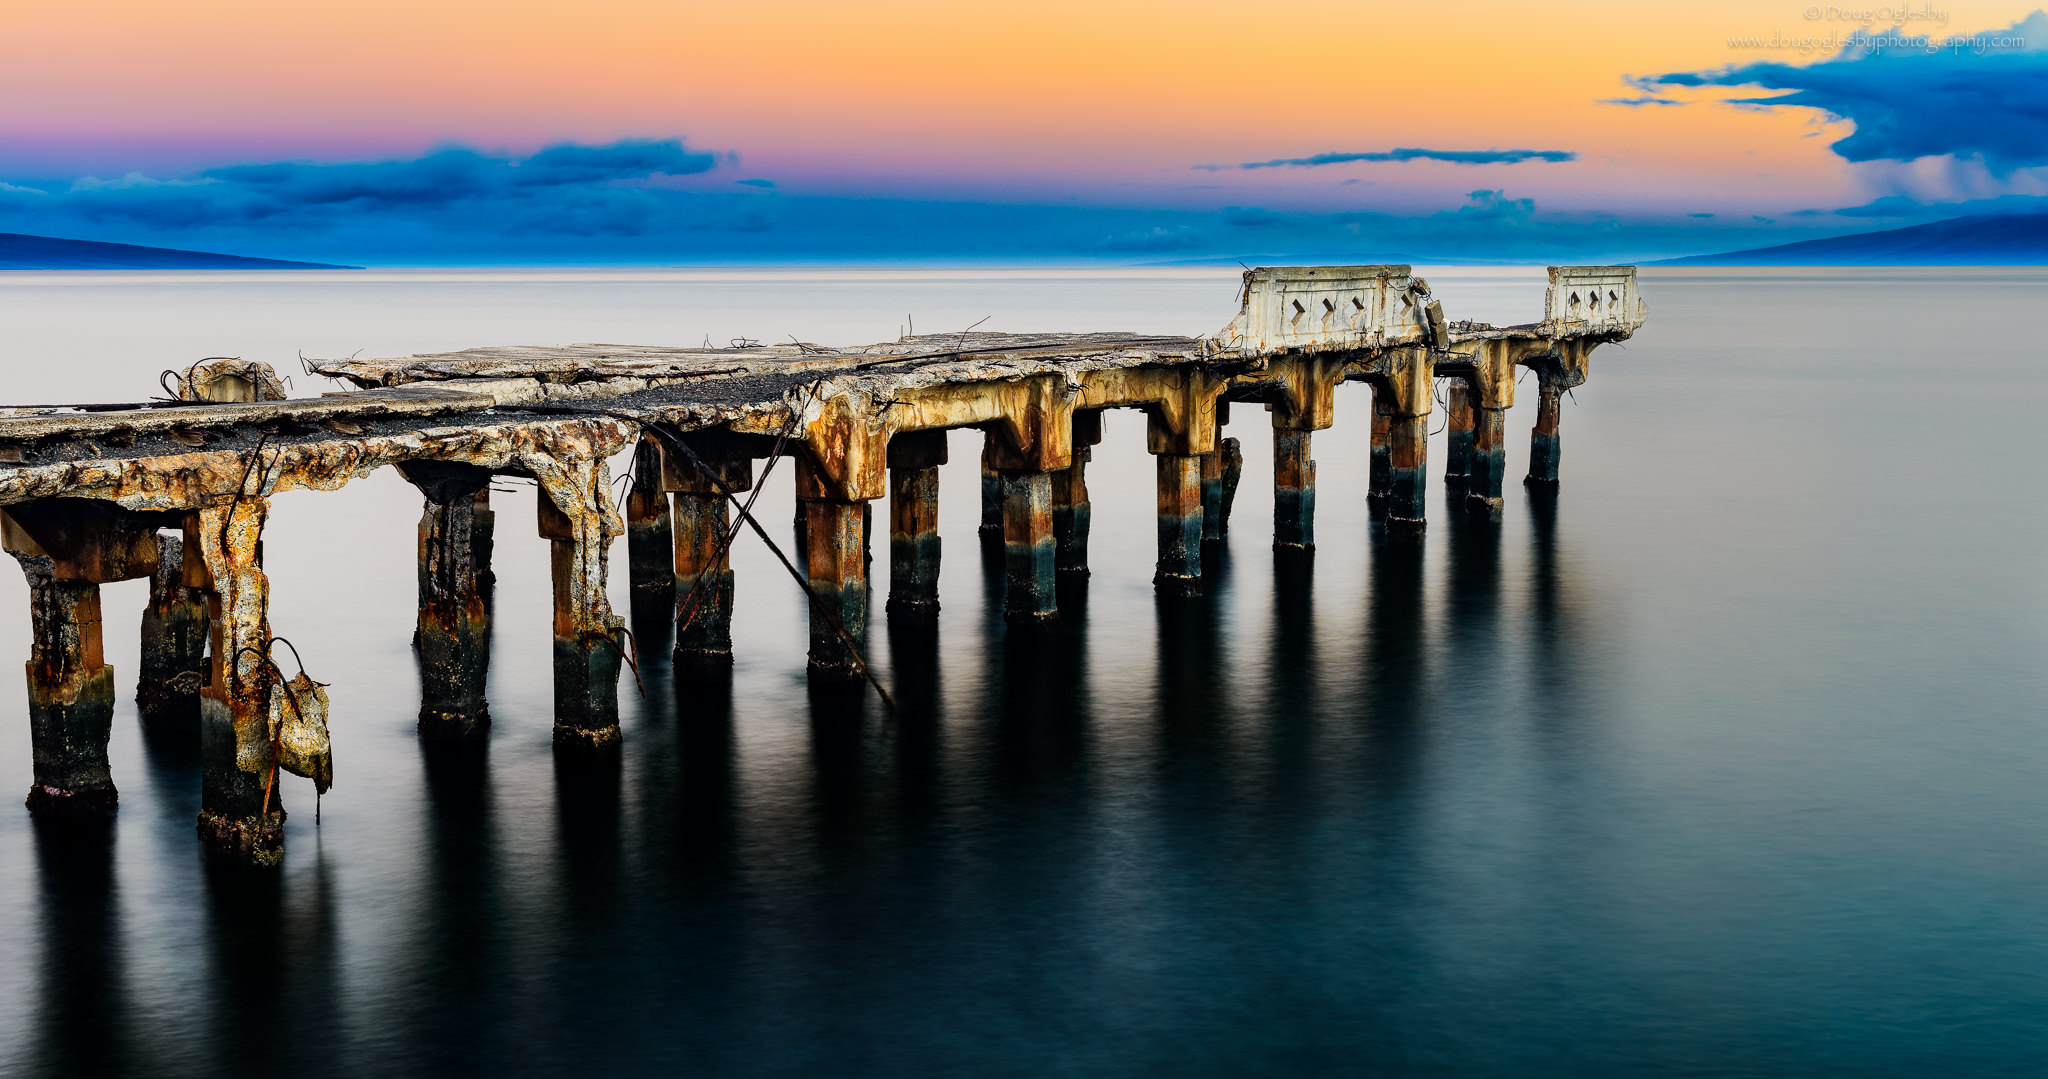 A pier destroyed by Hurricane Iniki in Lahaina, Mau'i. Copyright image by Photographer Doug Oglesby @ https://photographyworld.org/nature/early-hawaii-history/